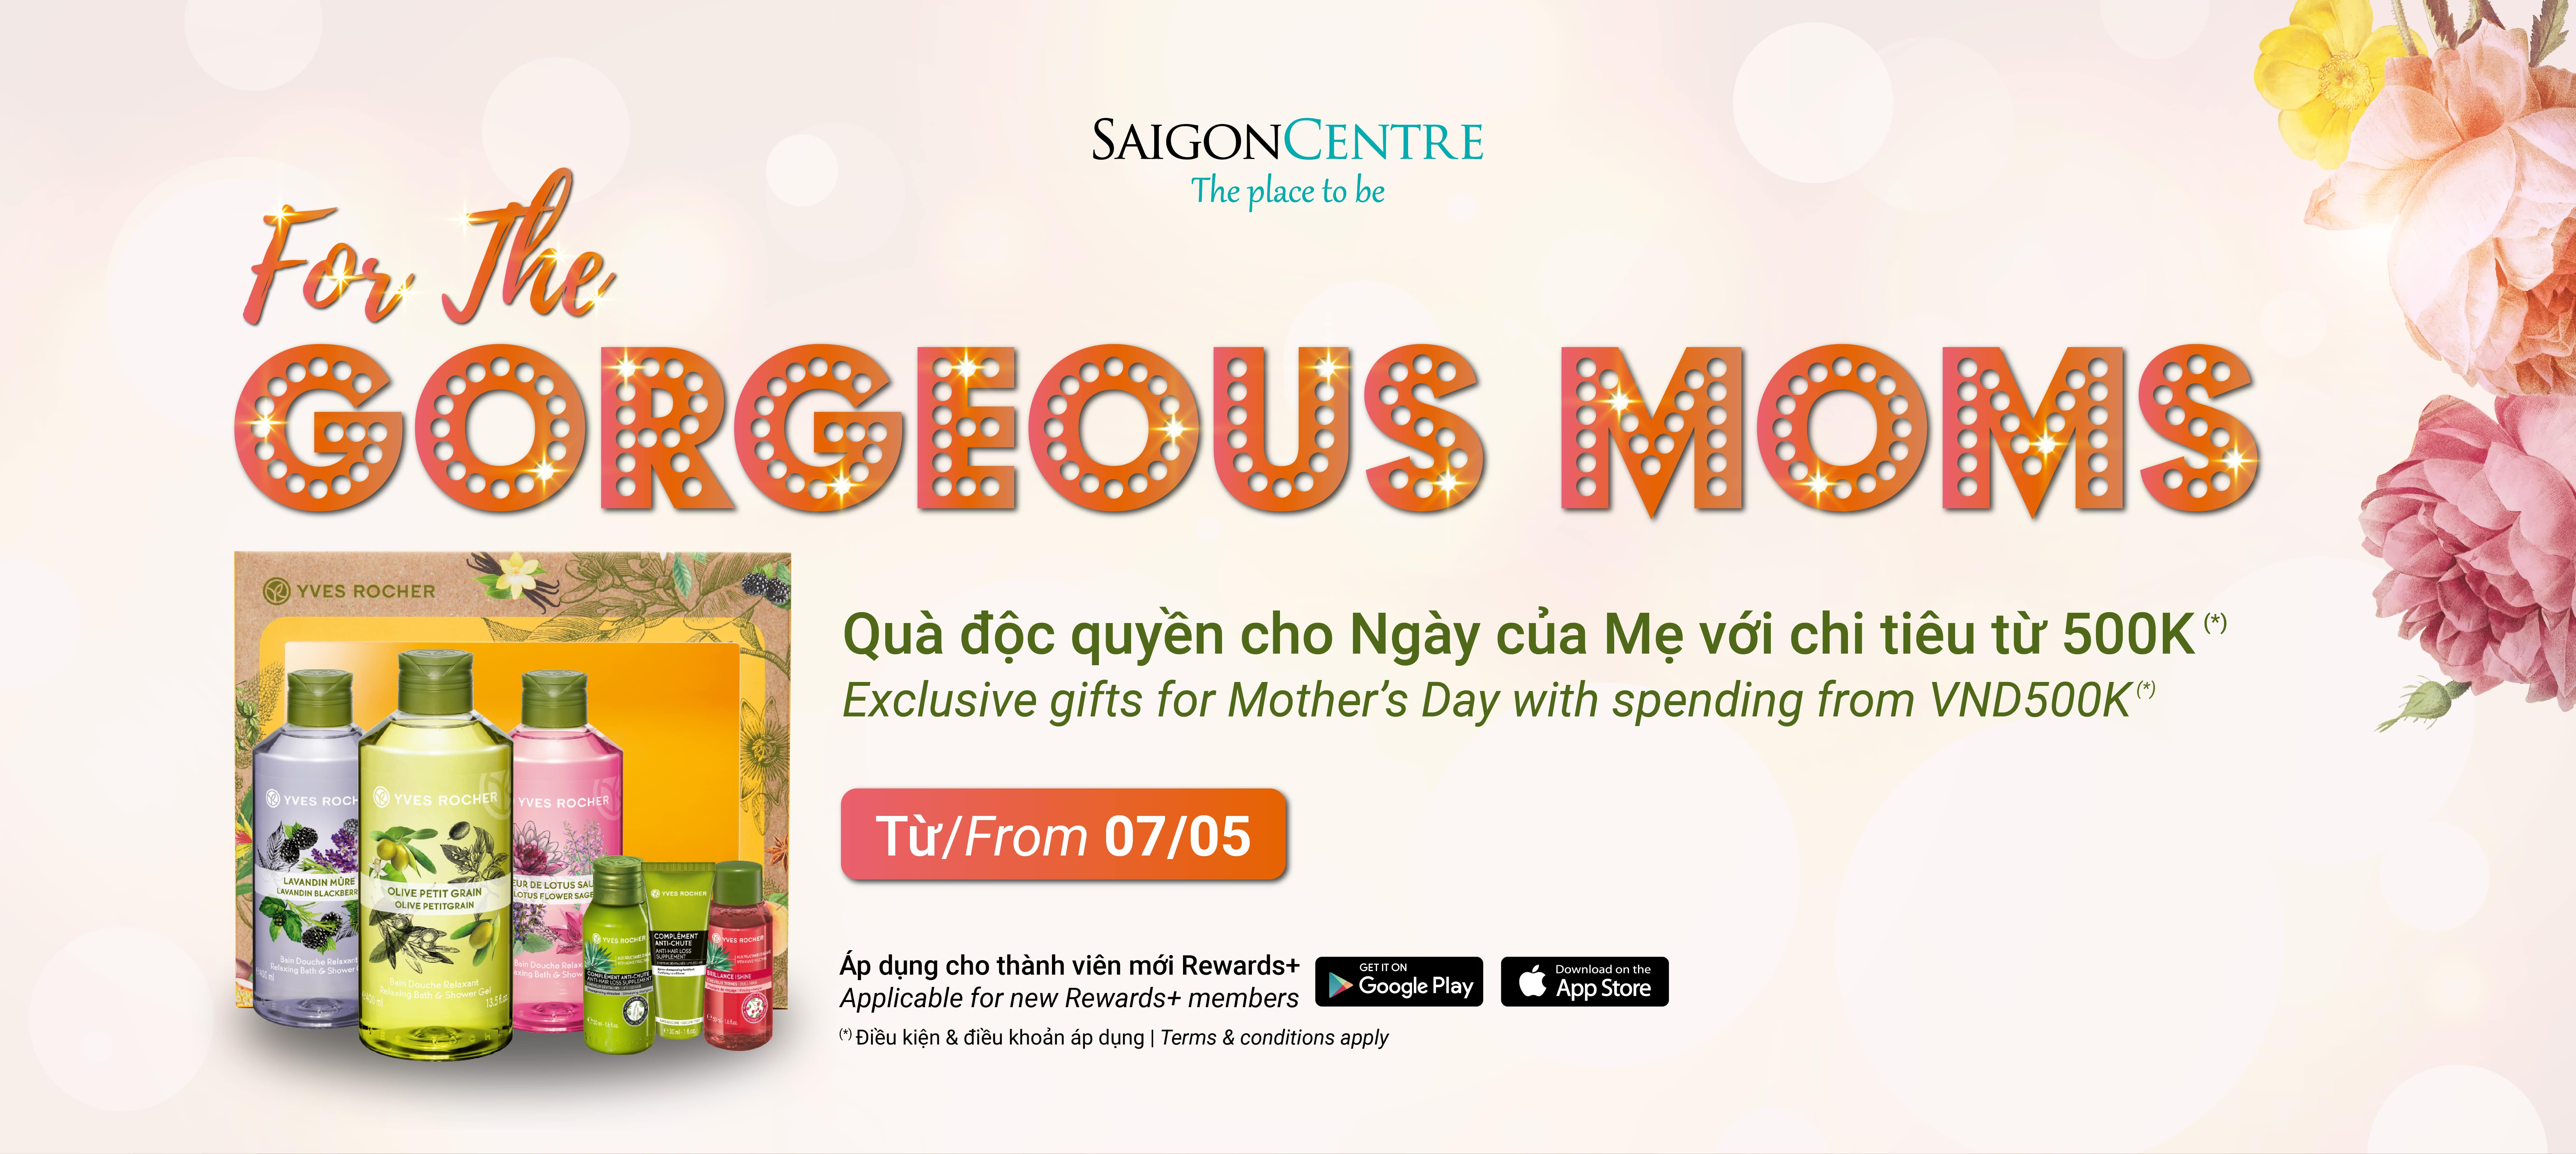 EXCLUSIVE GIFTS FOR MOTHER'S DAY